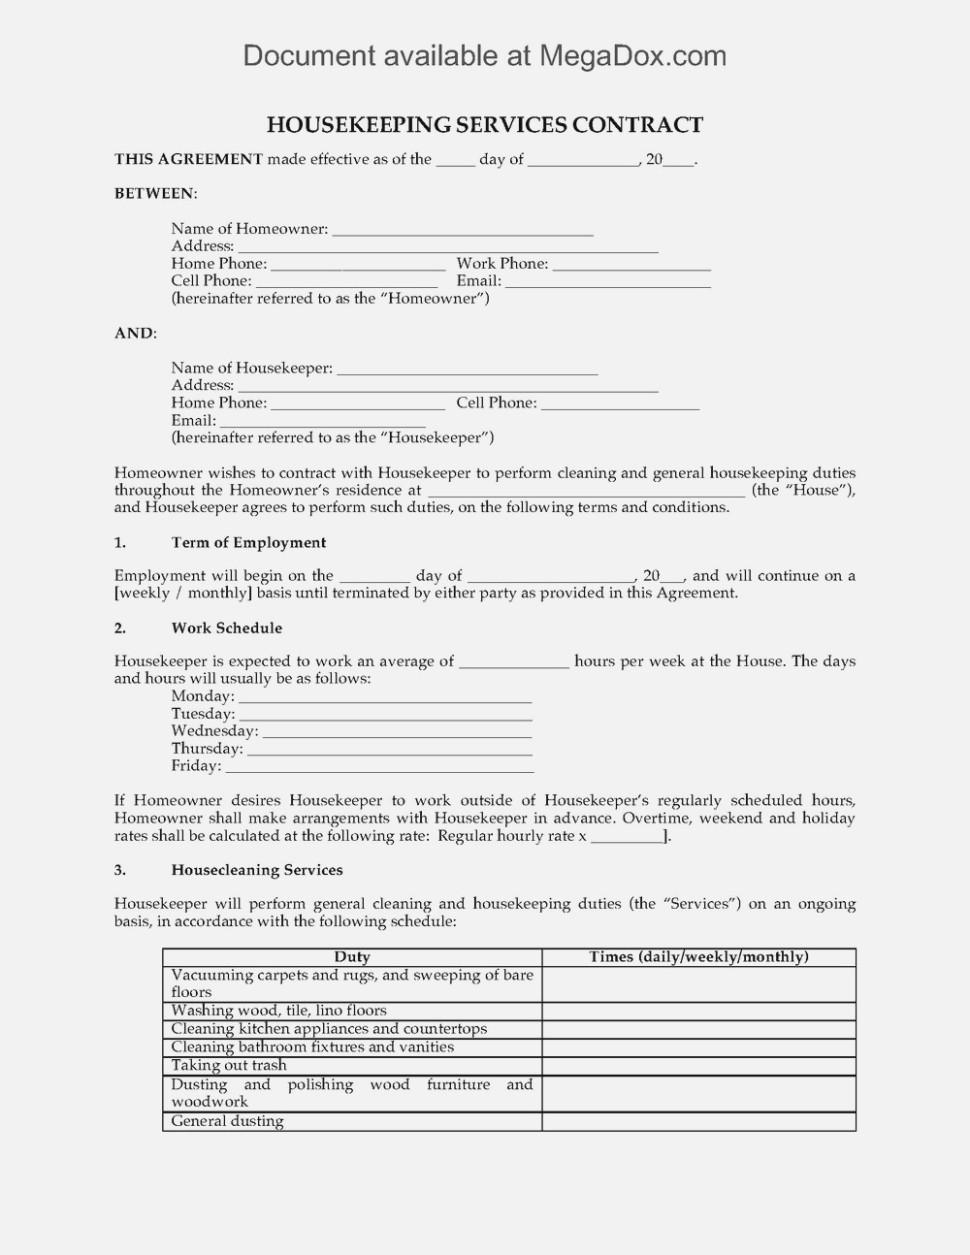 Workers Compensation Waiver Form For Independent Contractors Indiana